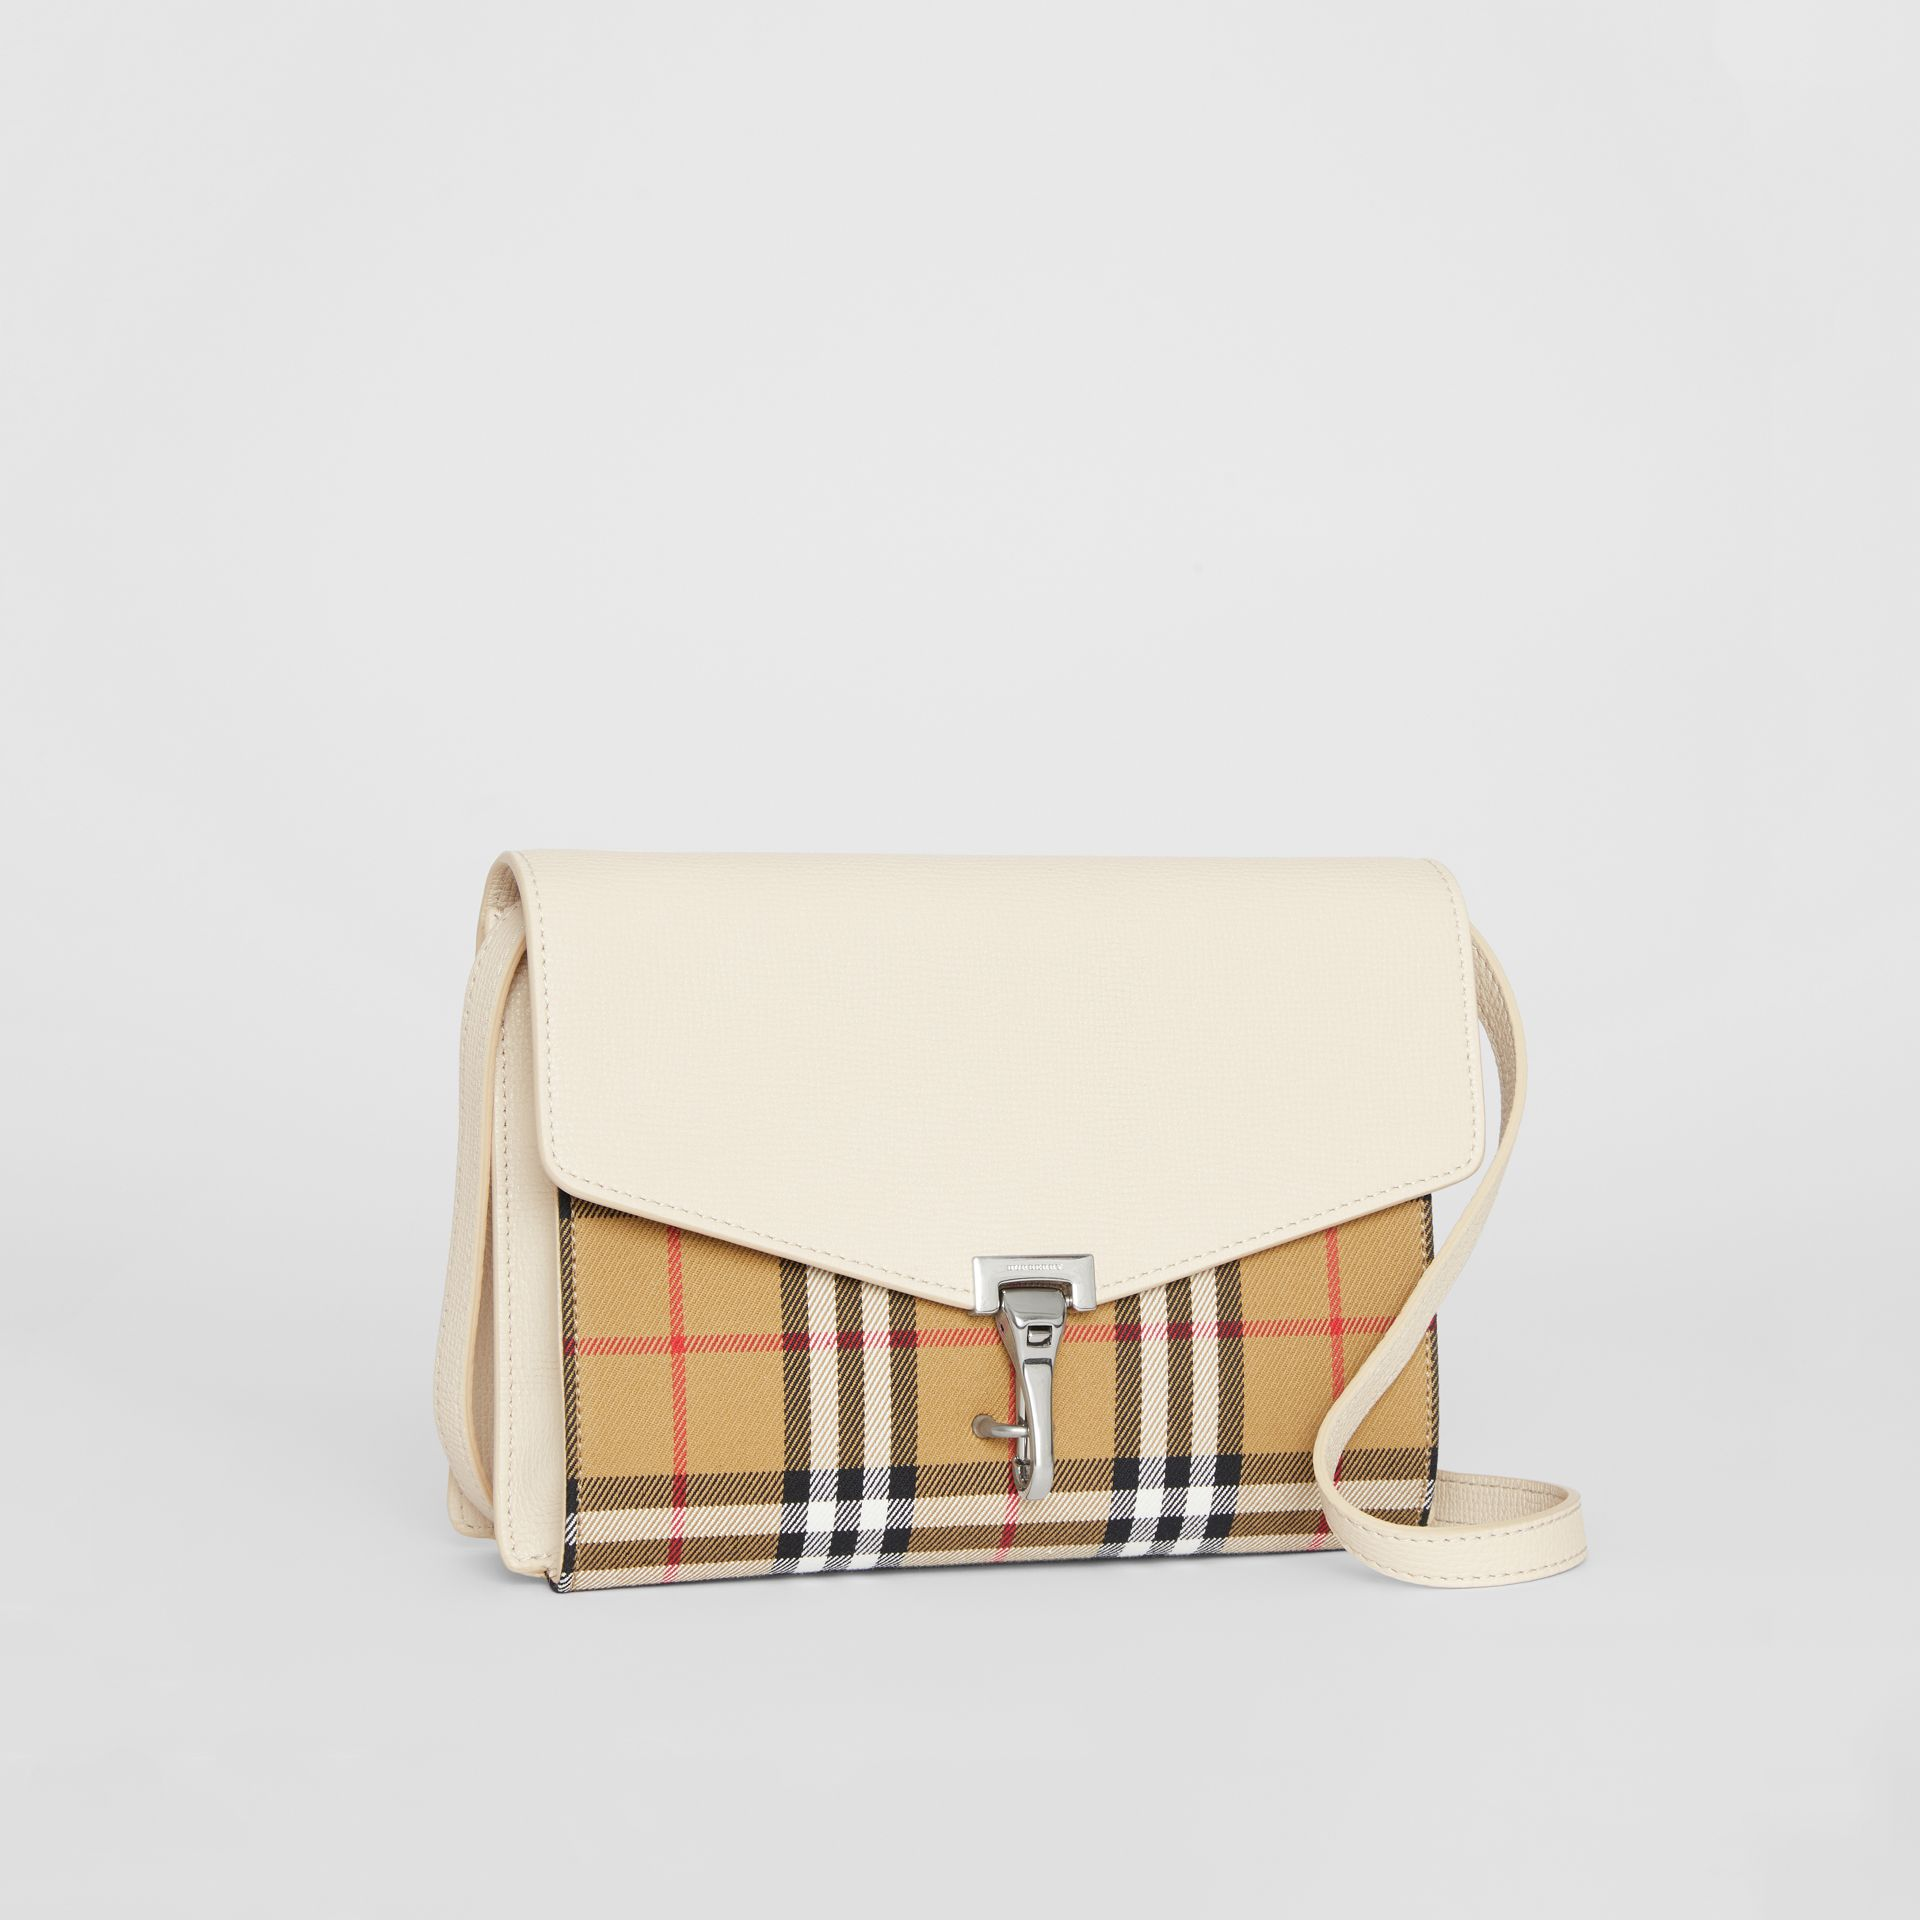 Small Vintage Check and Leather Crossbody Bag in Limestone - Women | Burberry - gallery image 6